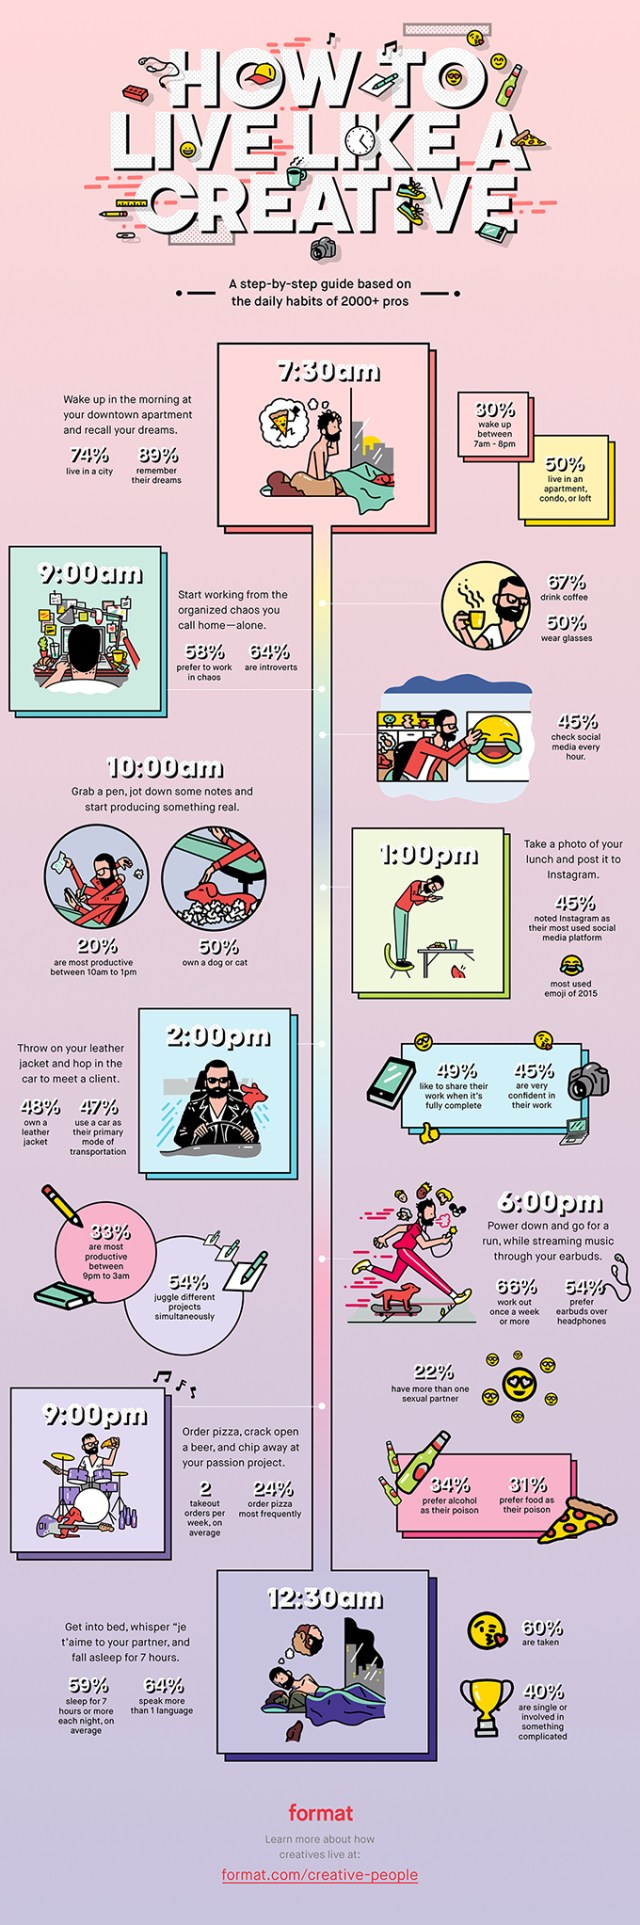 How Creatives Spend Their Day Infographic